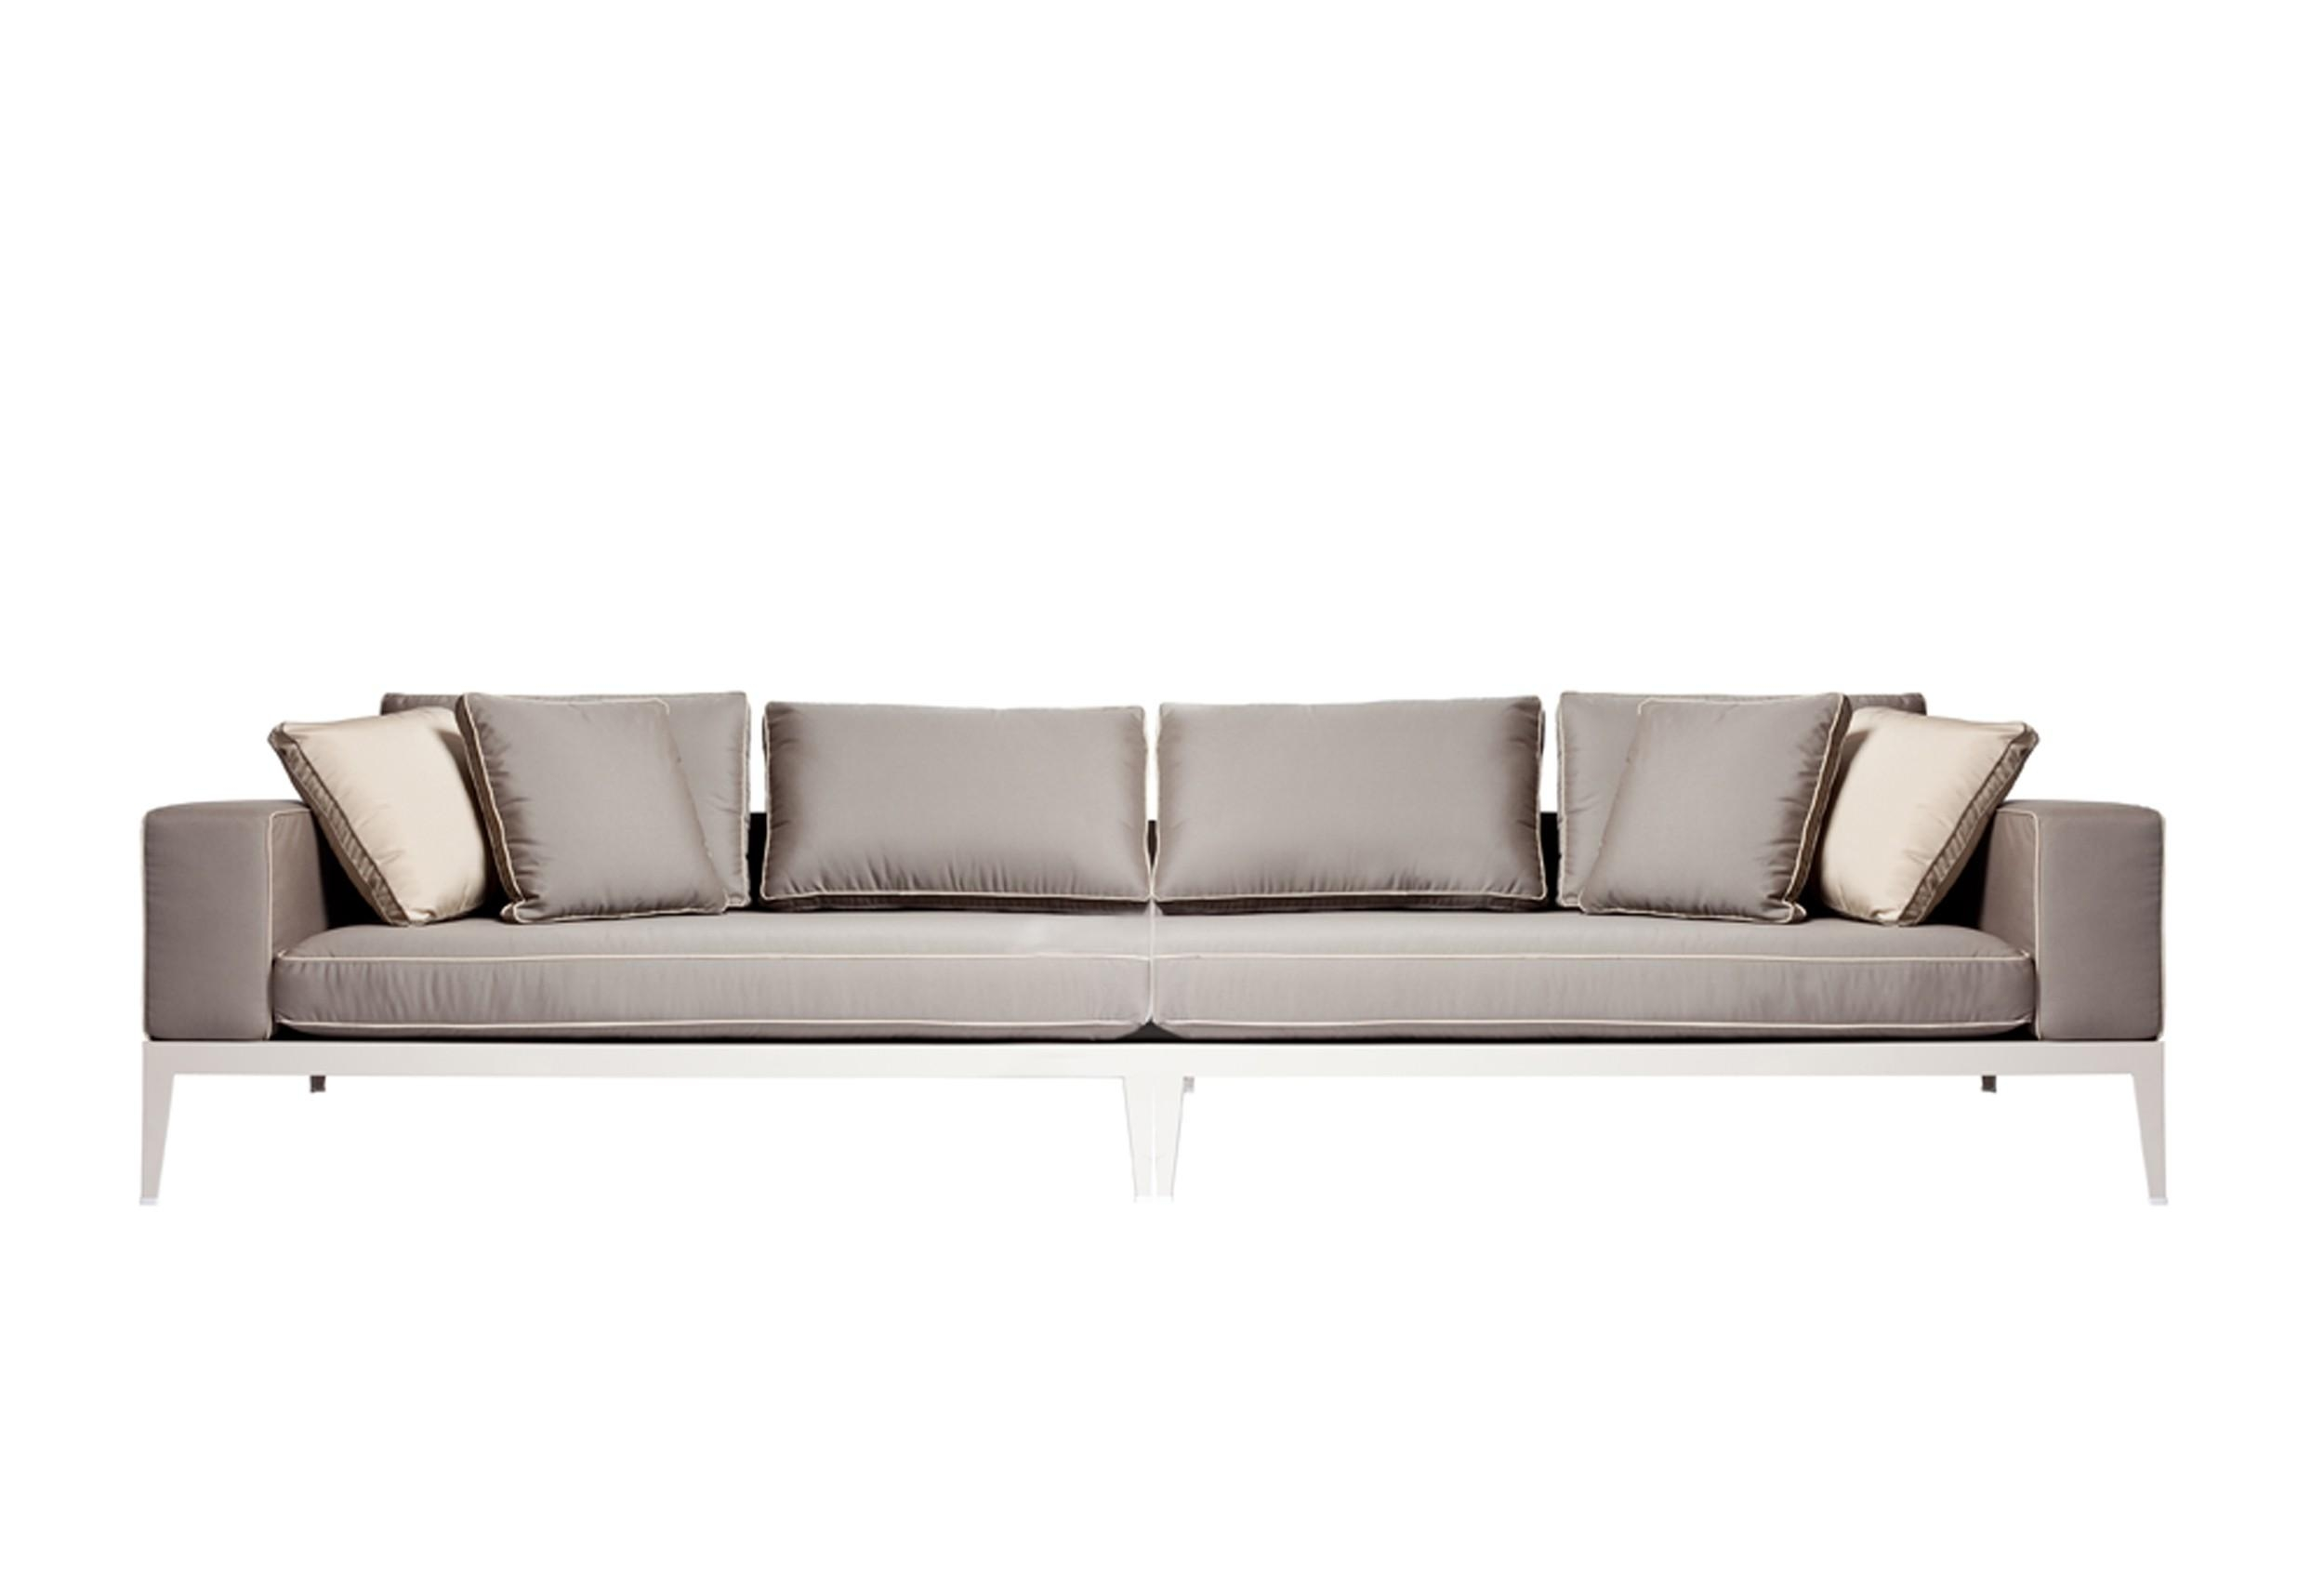 Balmoral 4 Seater Sofa | Viesso In 4 Seat Sofas (View 9 of 20)